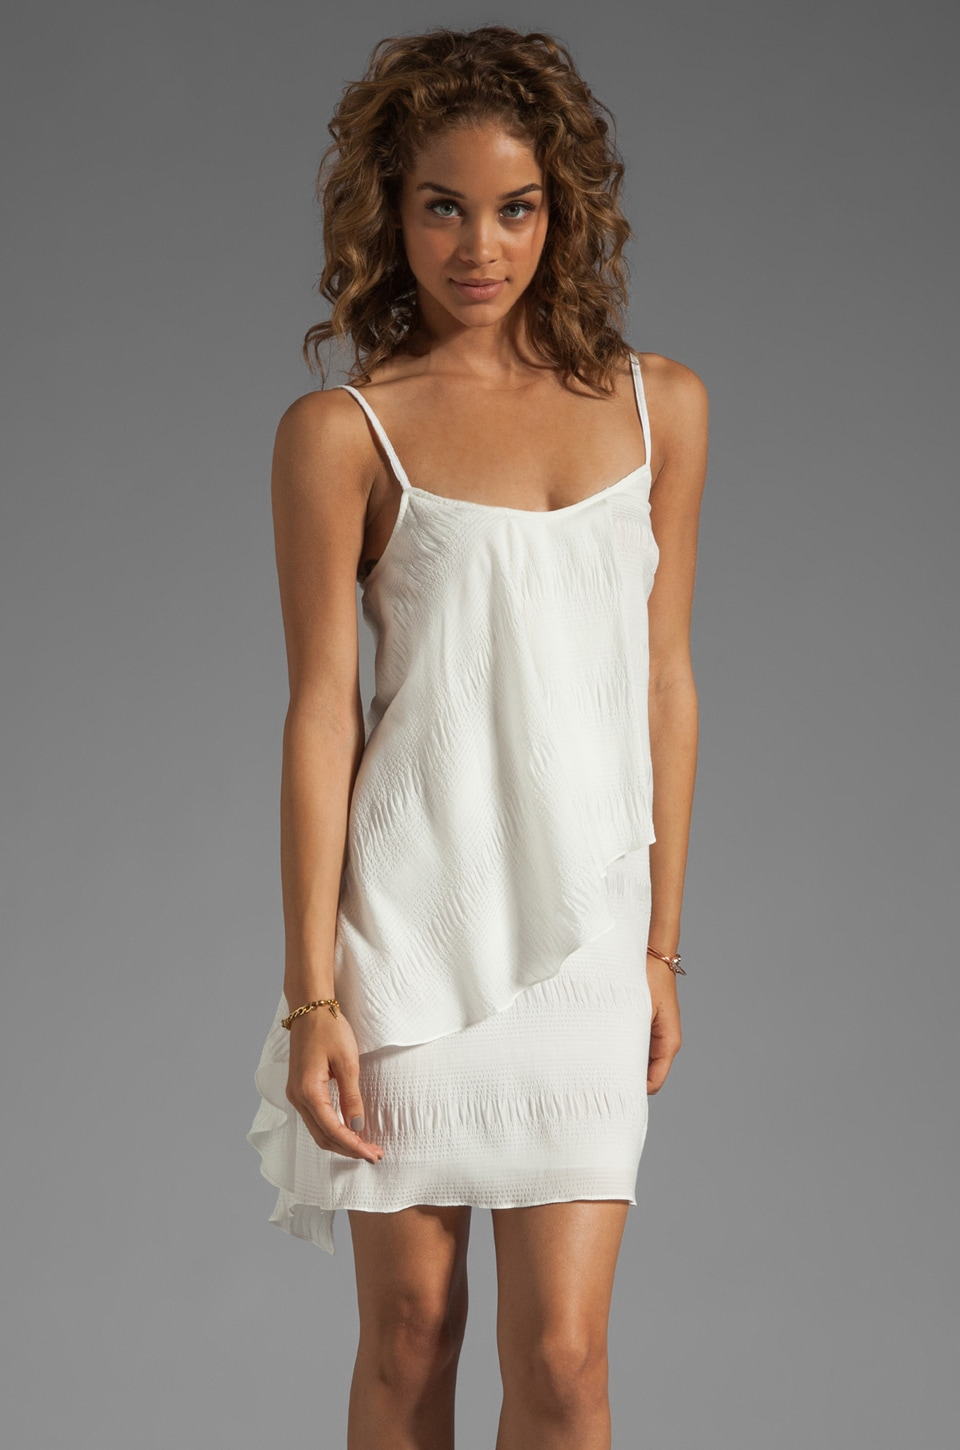 DEREK LAM 10 CROSBY Cami Dress in White